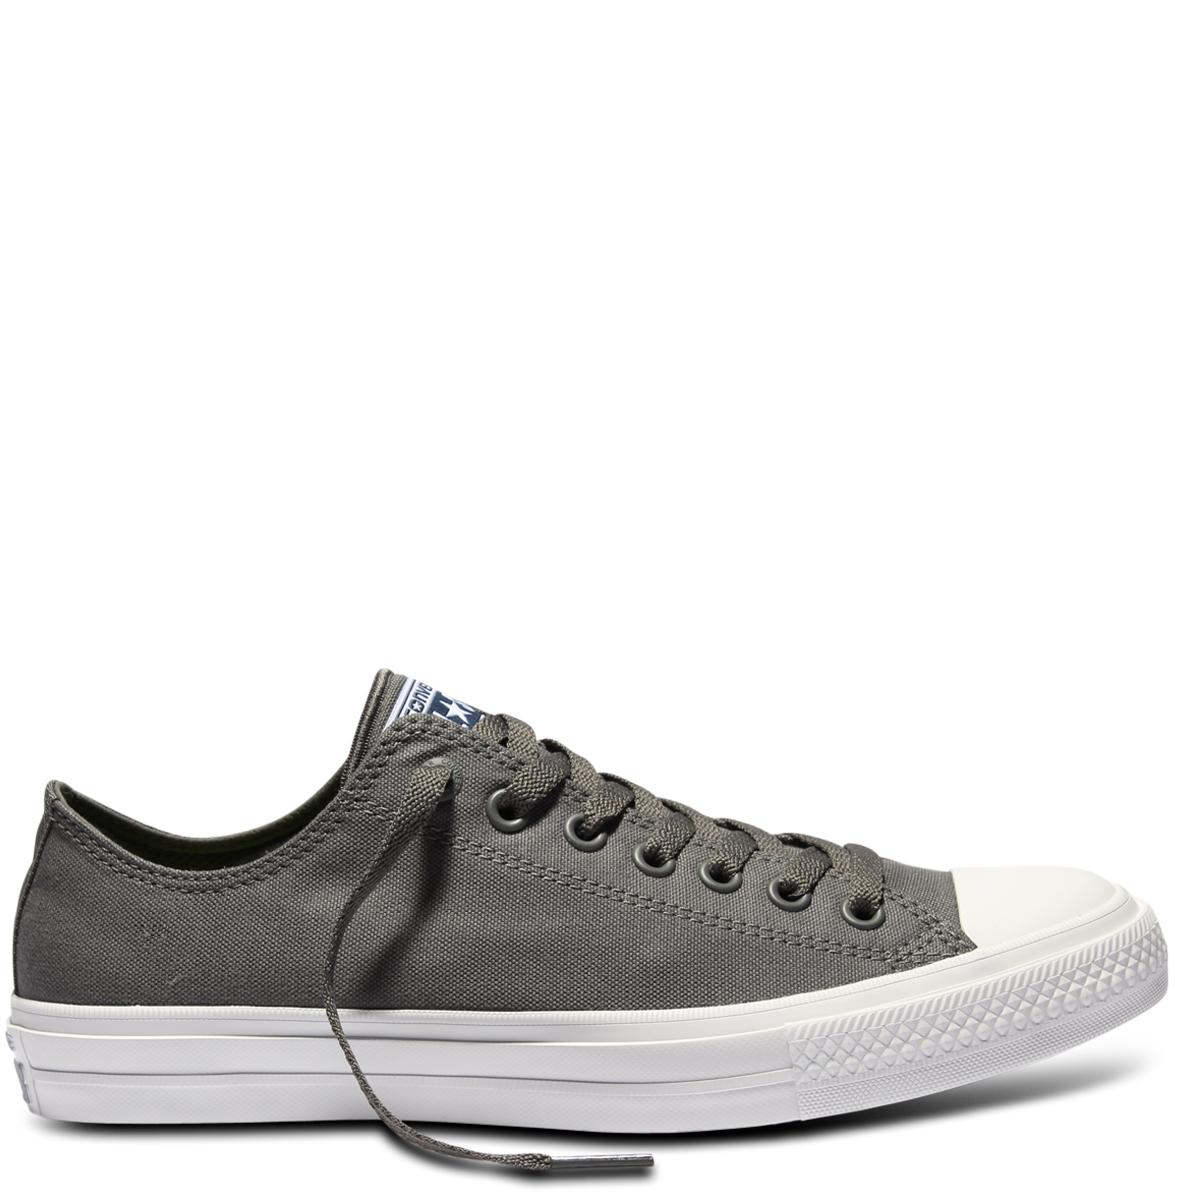 CONVERSE Chuck Taylor All Star new CT II Colour low Top Sepatu Sneakers